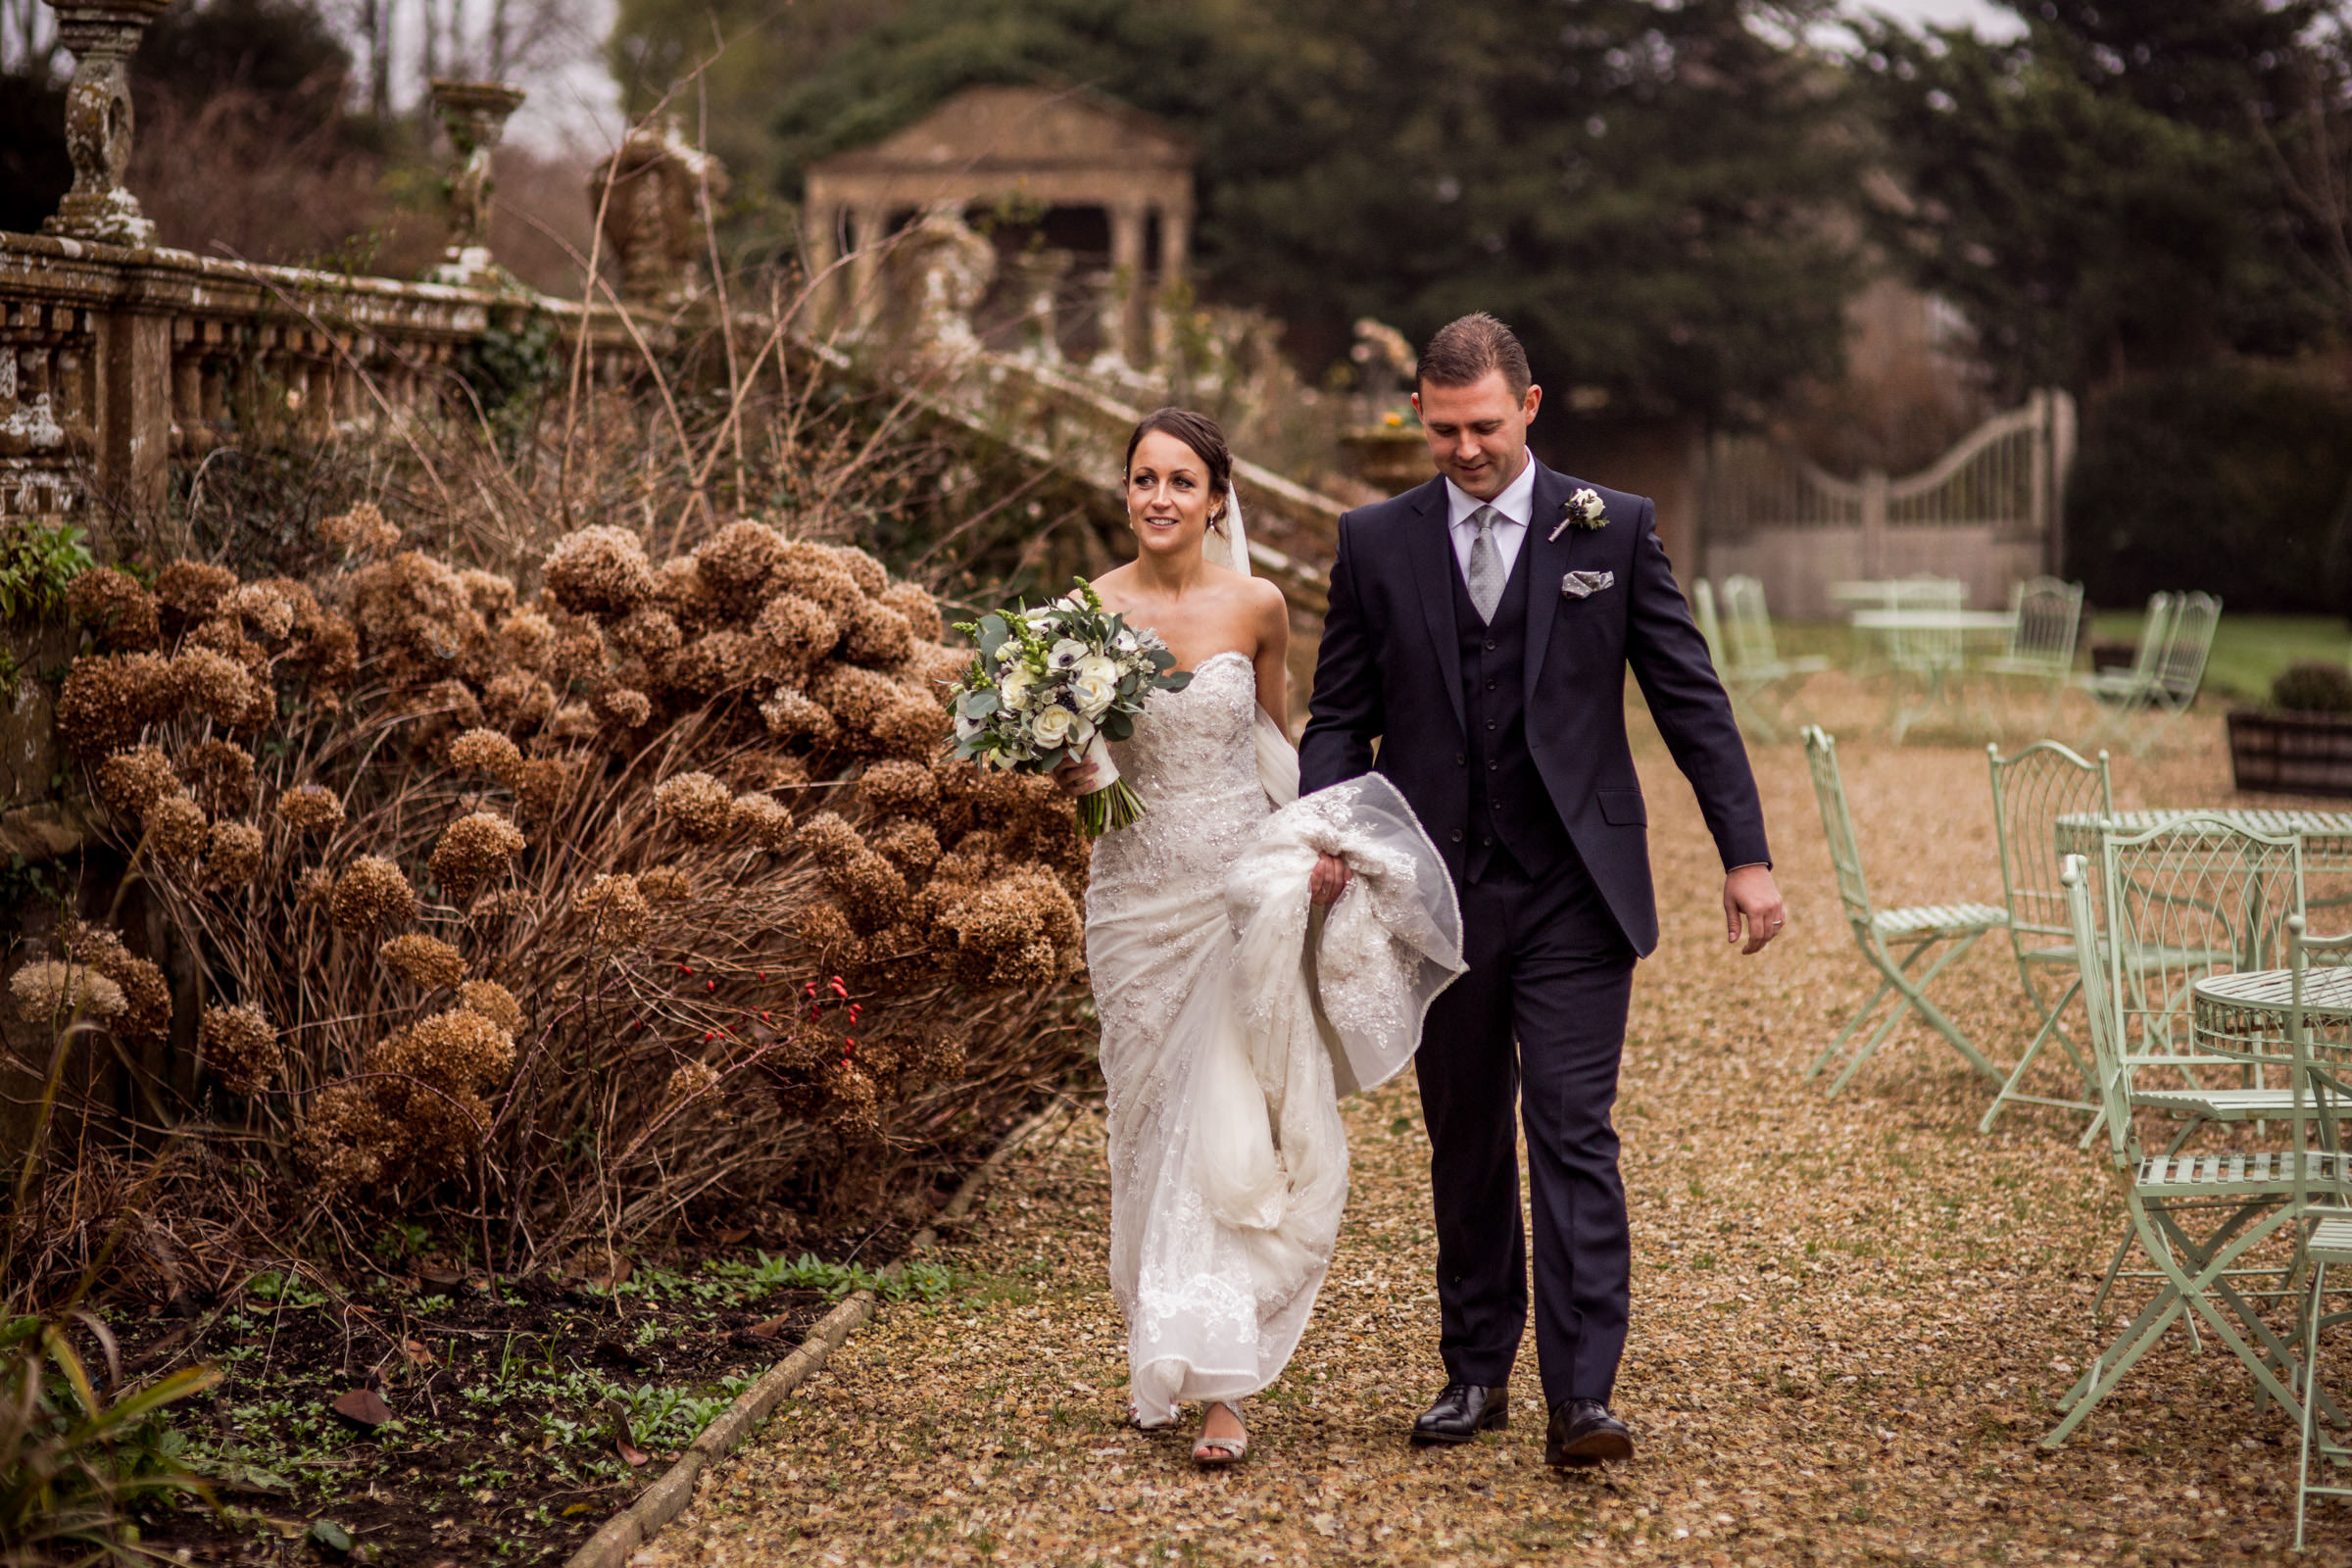 Wedding Photos At Brympton House In Somerset 020.jpg